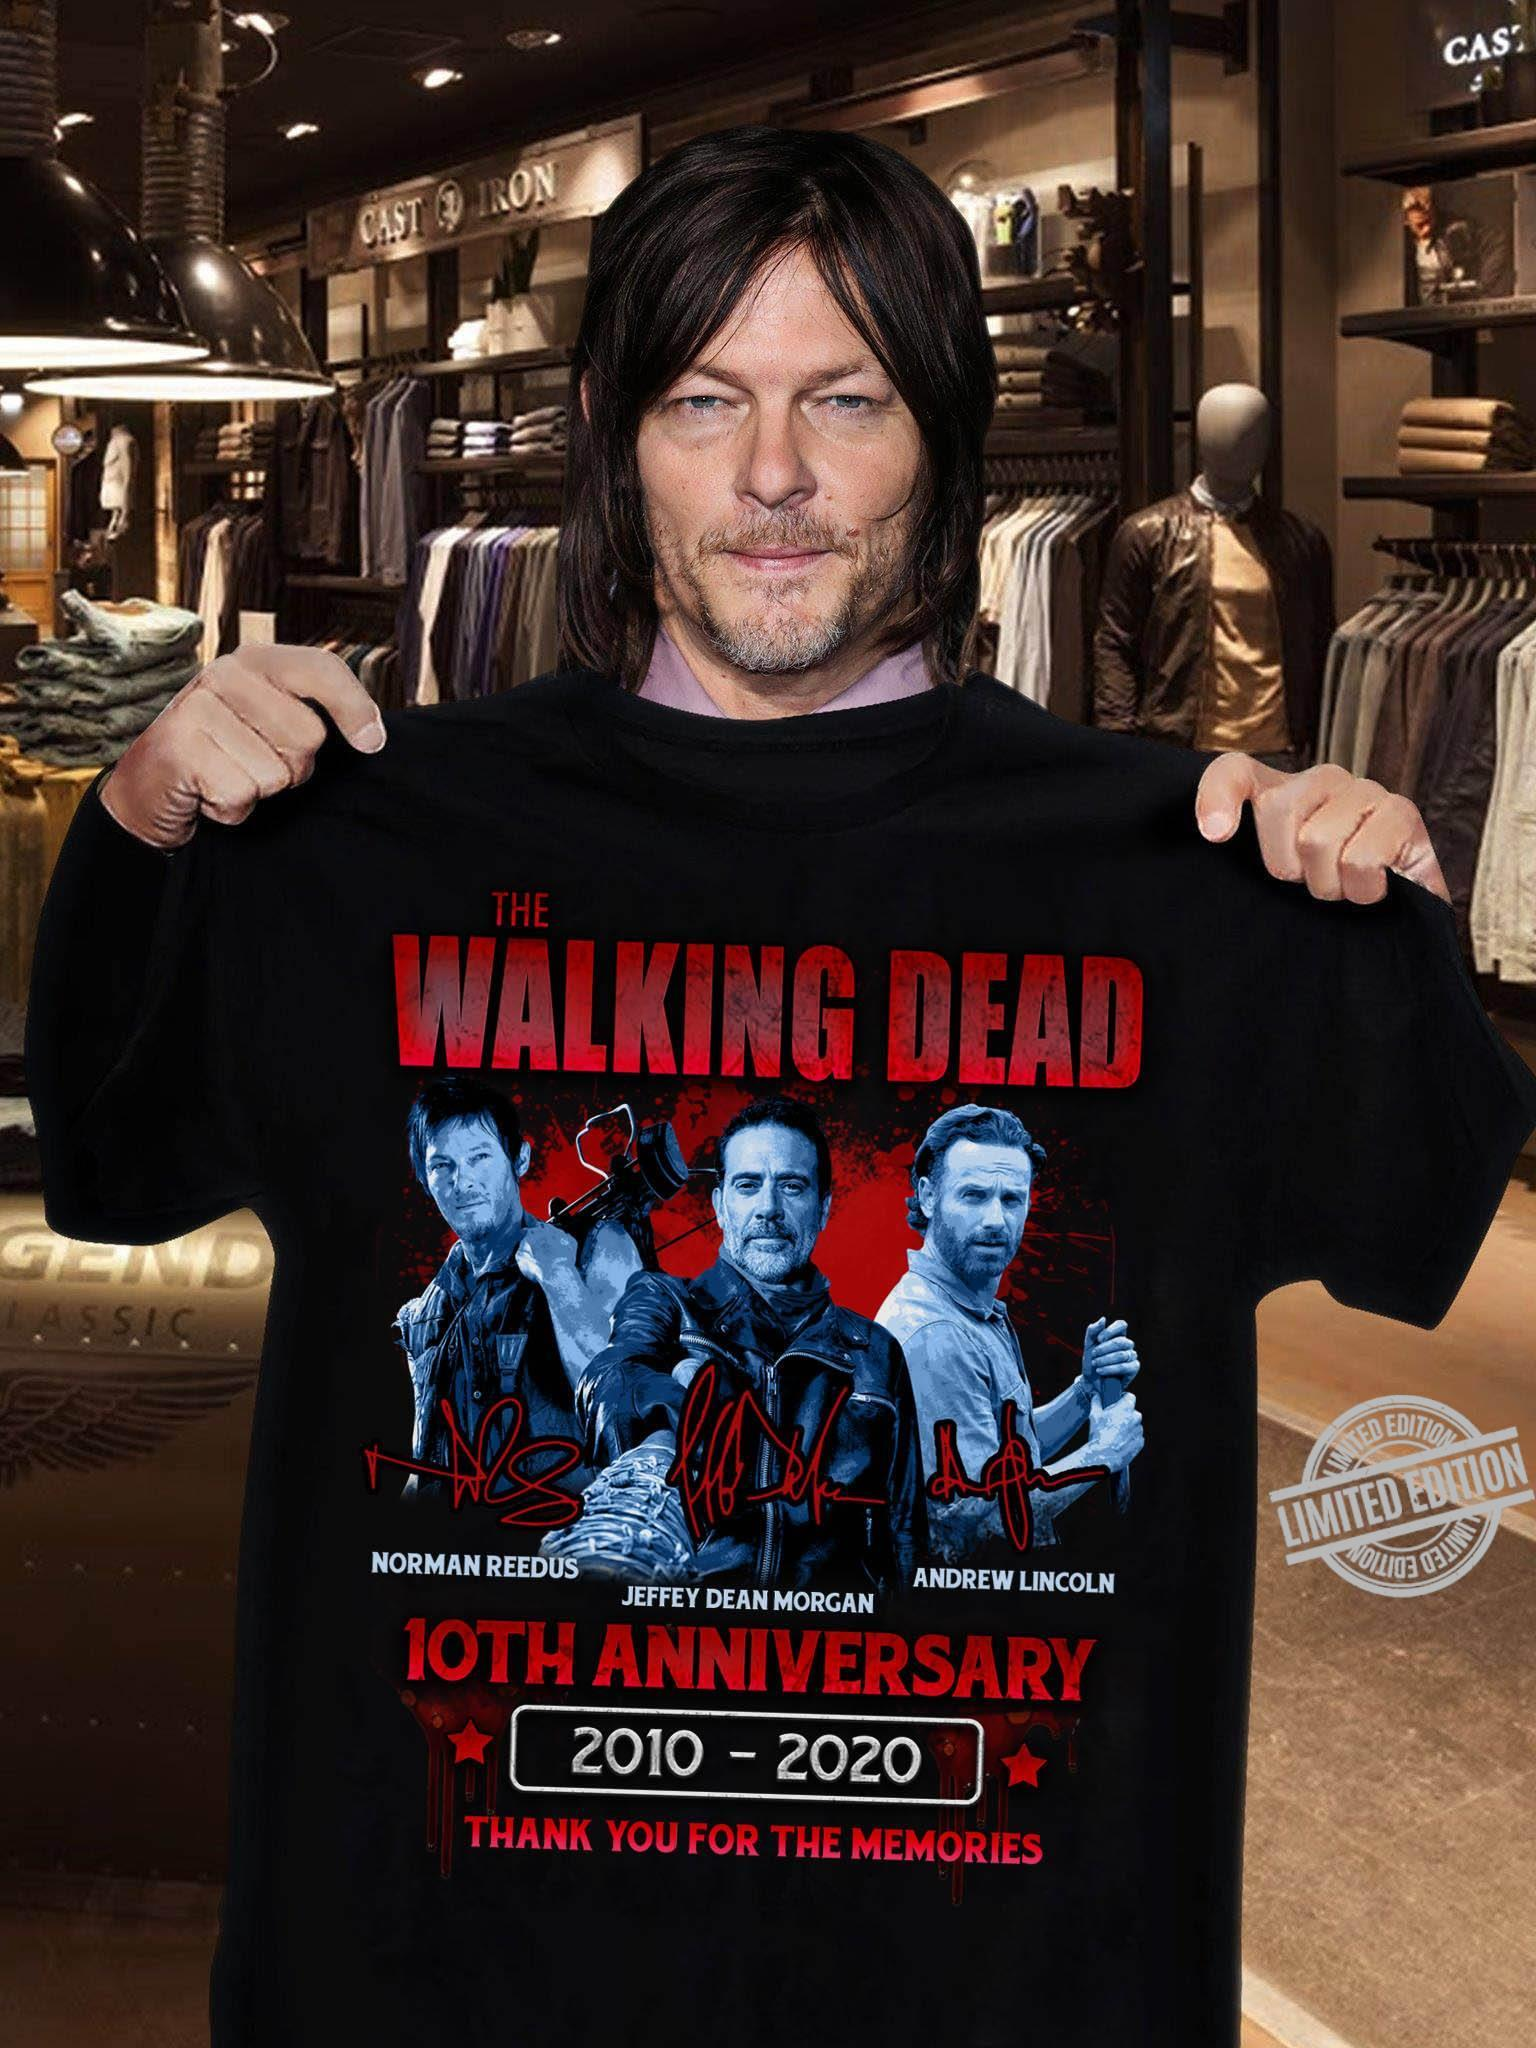 The Walking Dead 10th Anniversary 2010-2020 Thank Your For The Memories Shirt